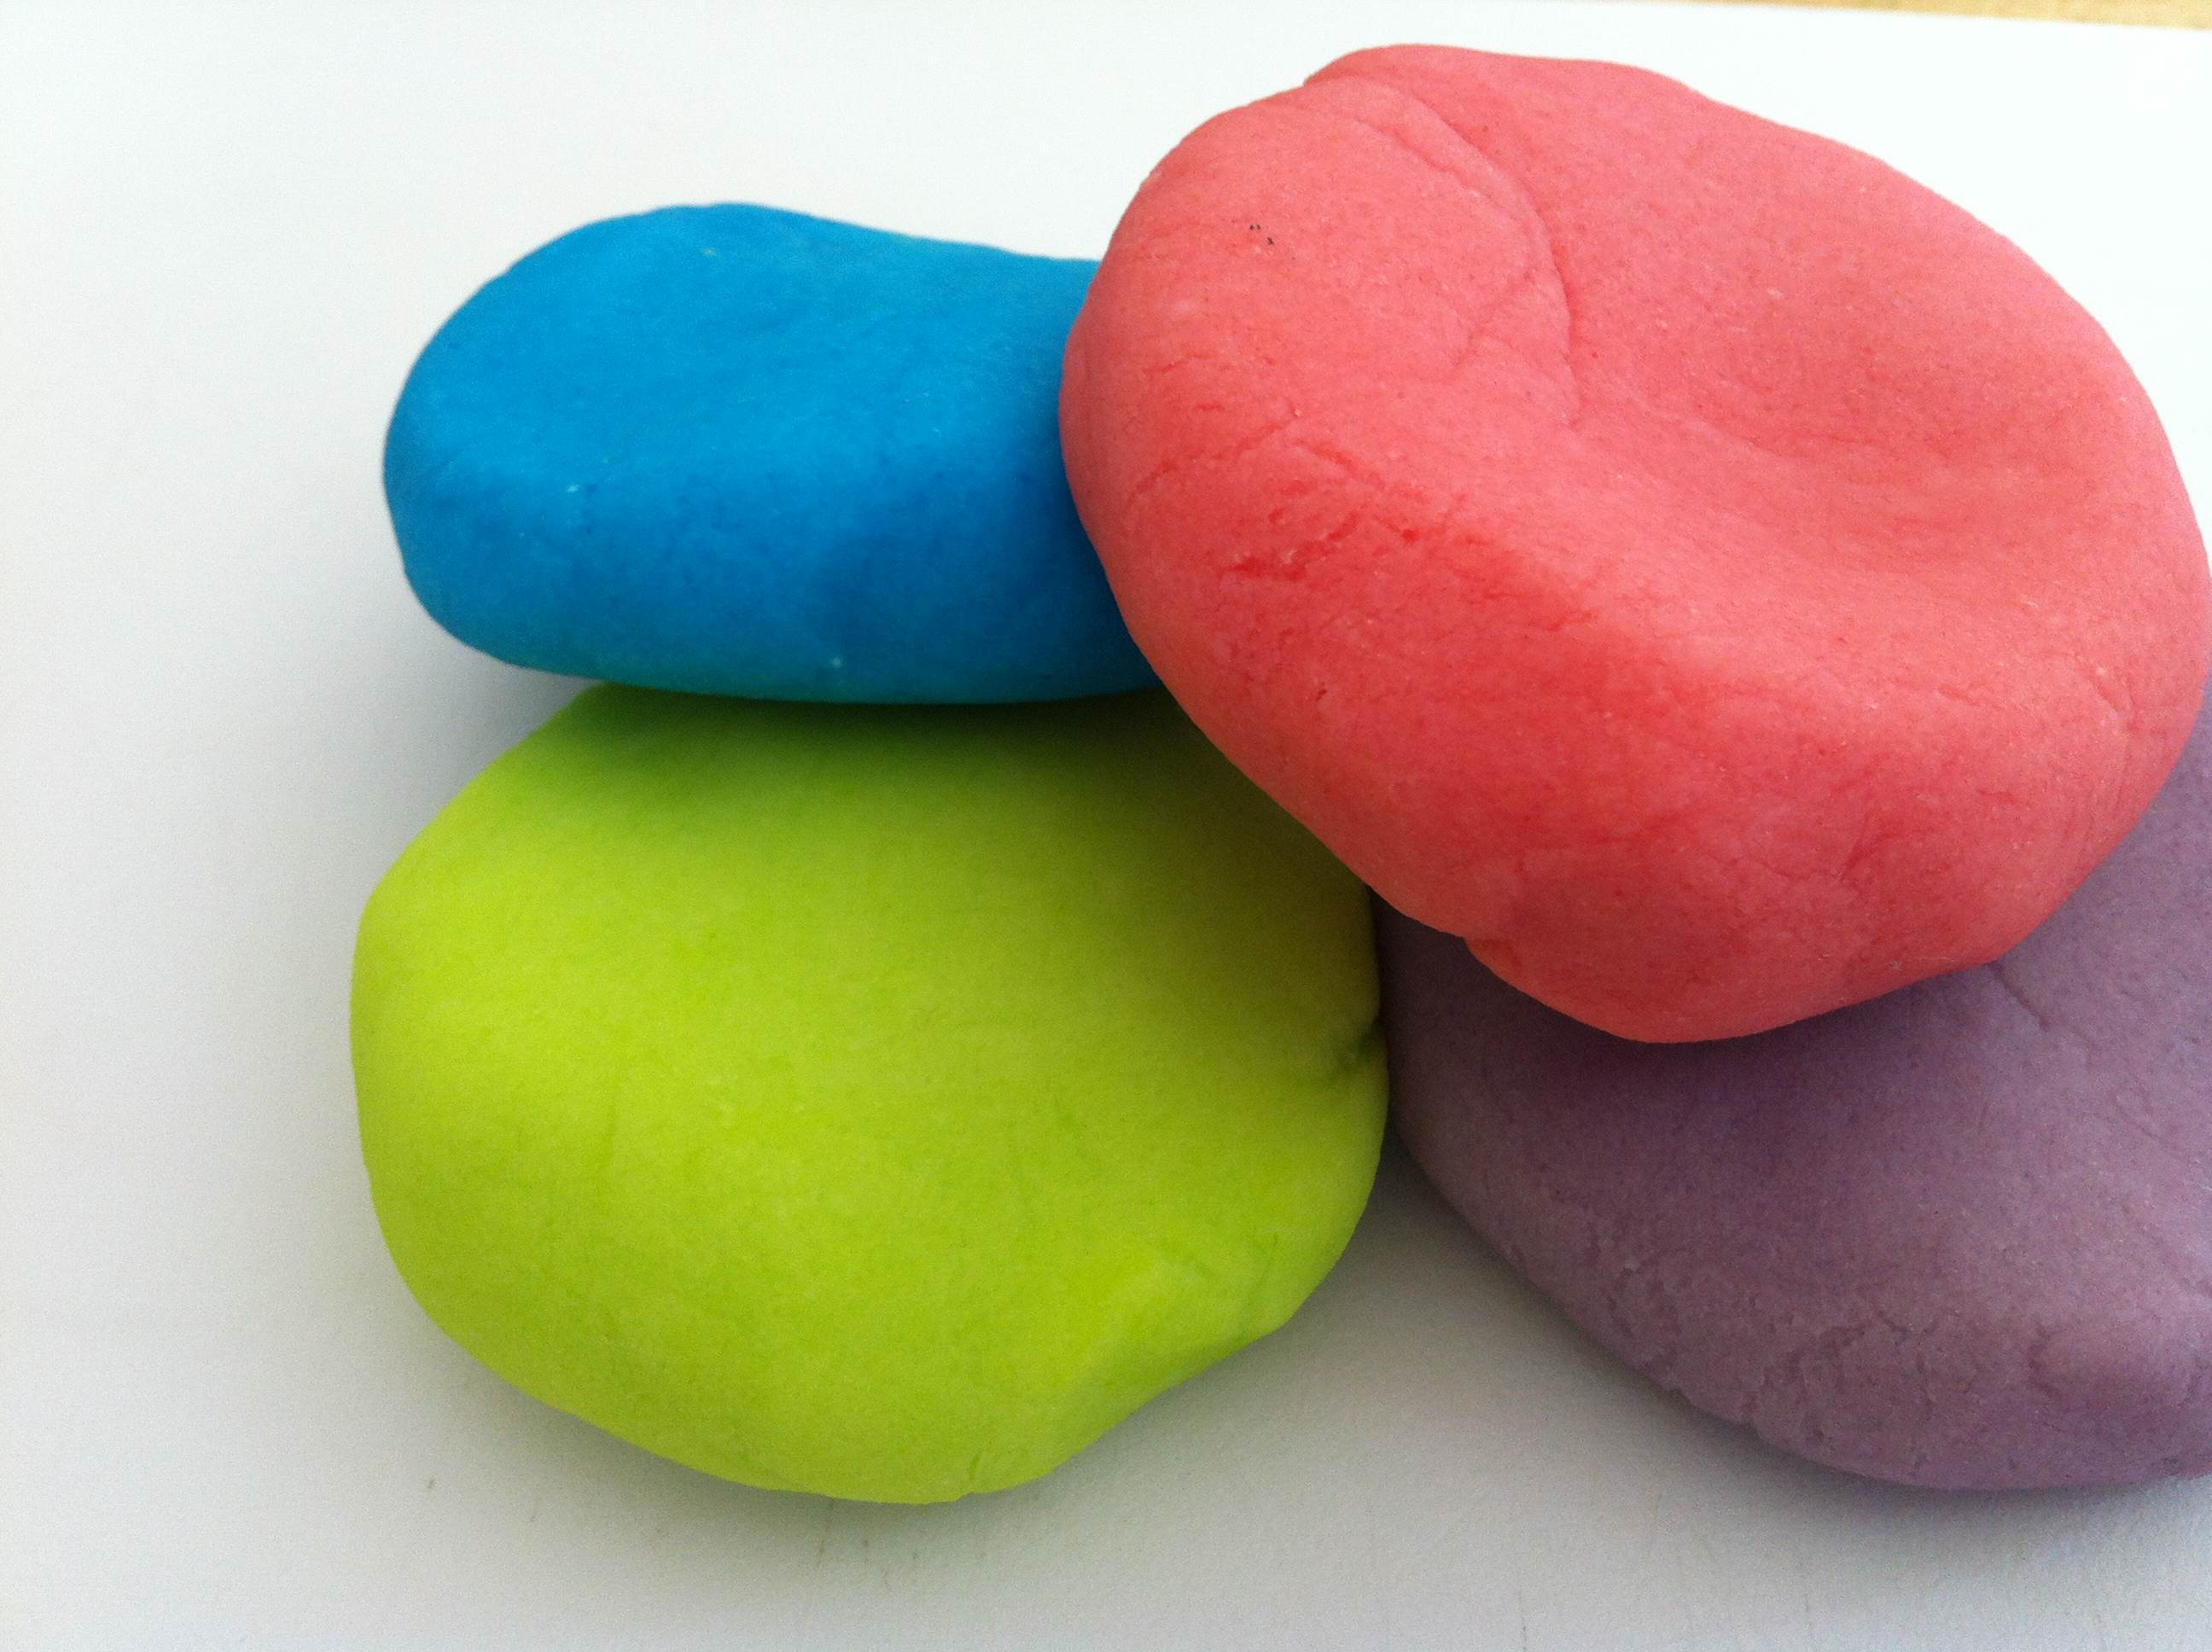 208725 together with Ice Cream likewise Hasbro Operando Juegos De Mesa likewise Nerf furthermore Watch. on play doh